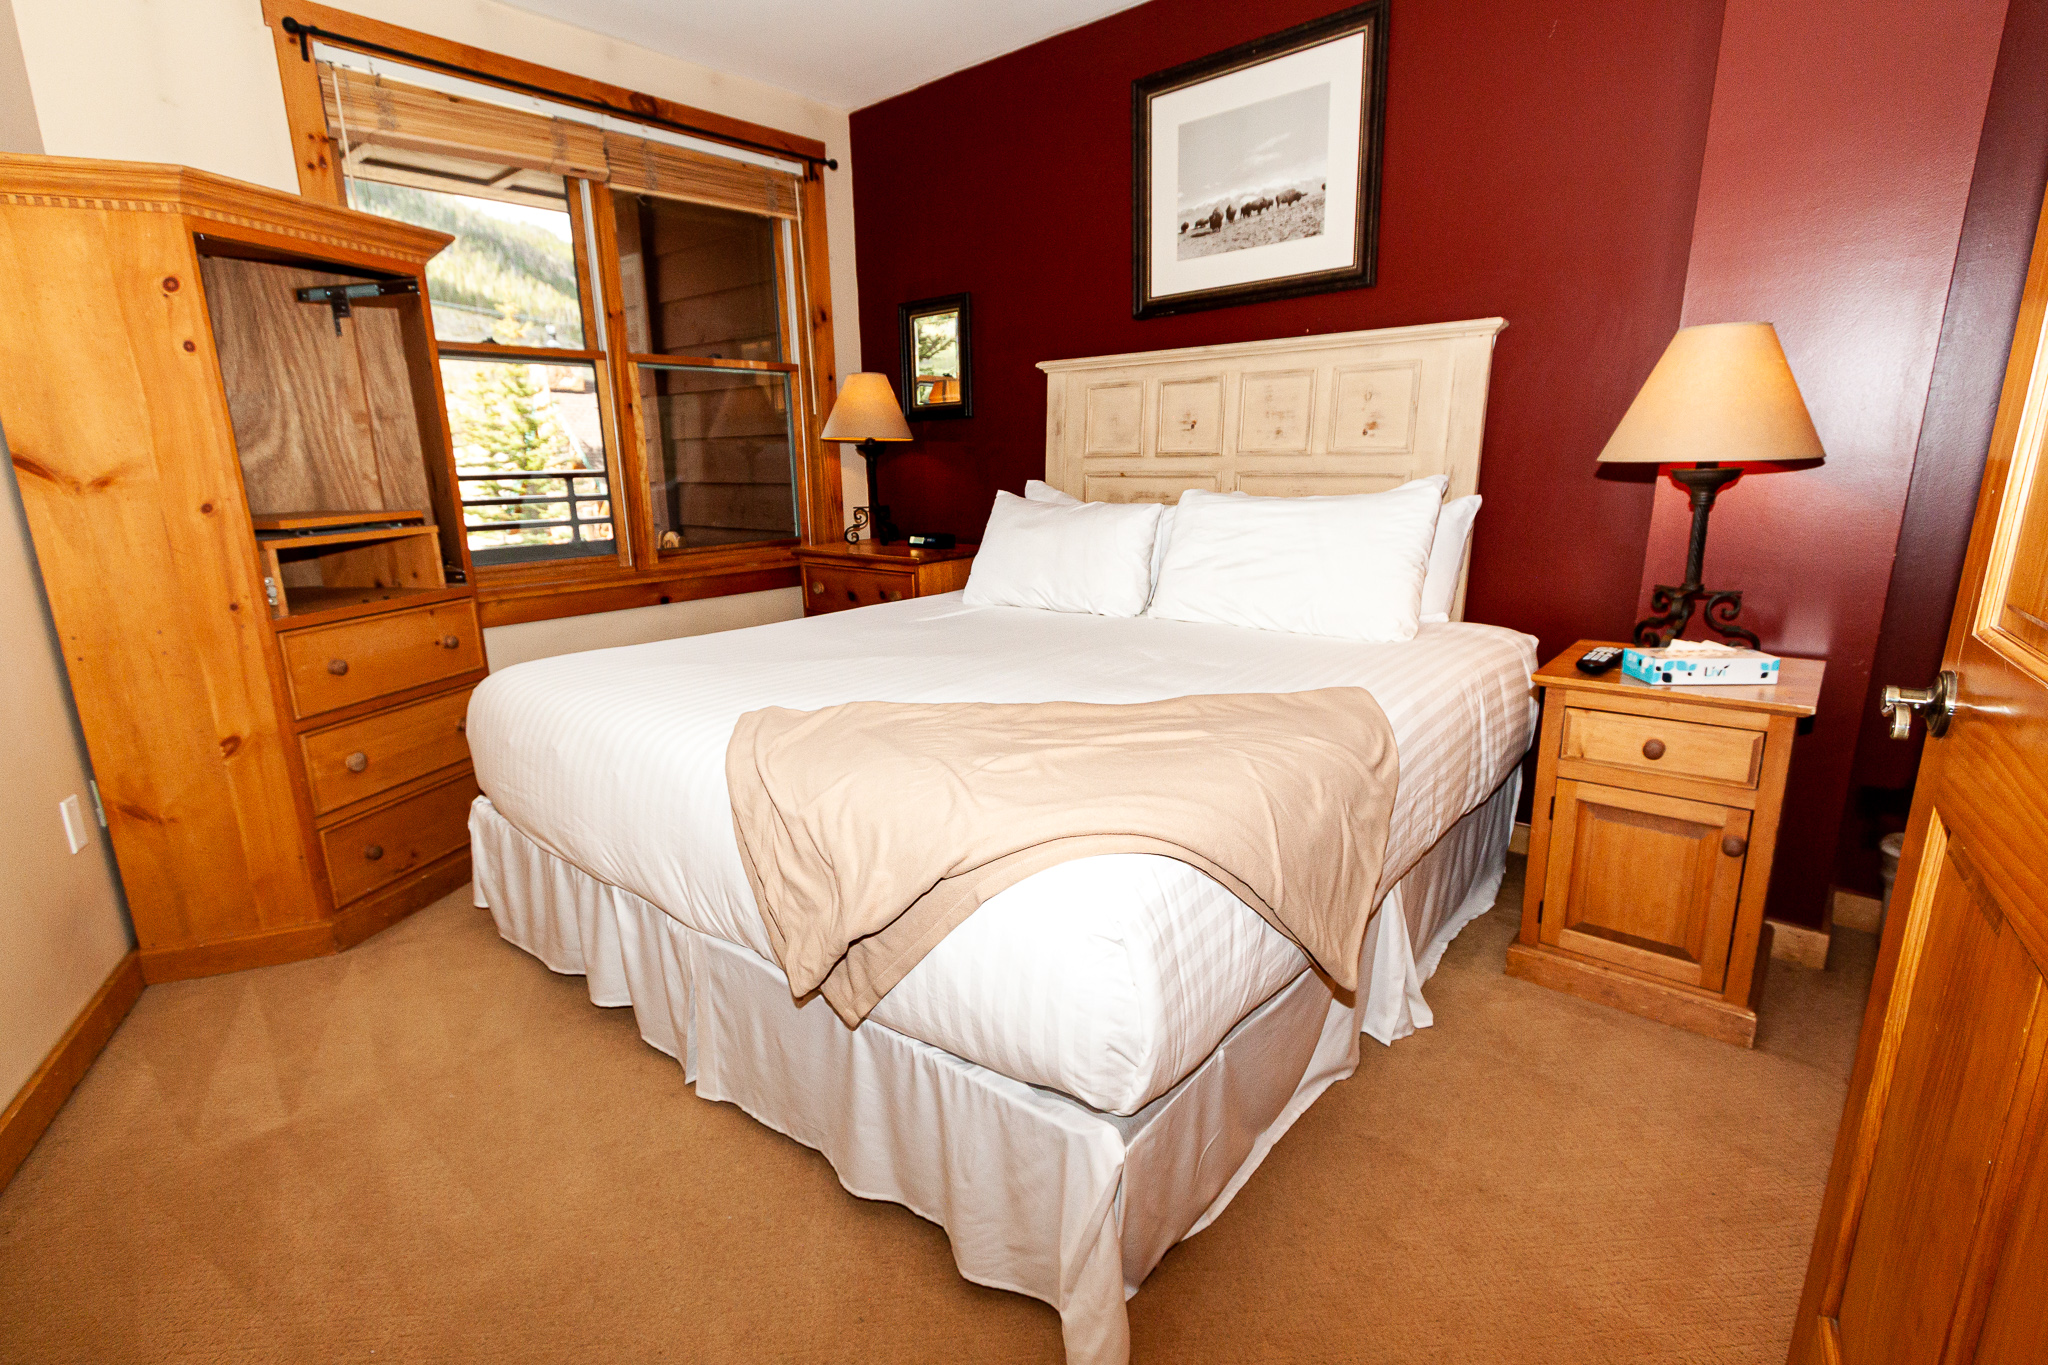 The bedroom features a king-sized bed and a mounted flat screen TV. **New photo coming soon.**